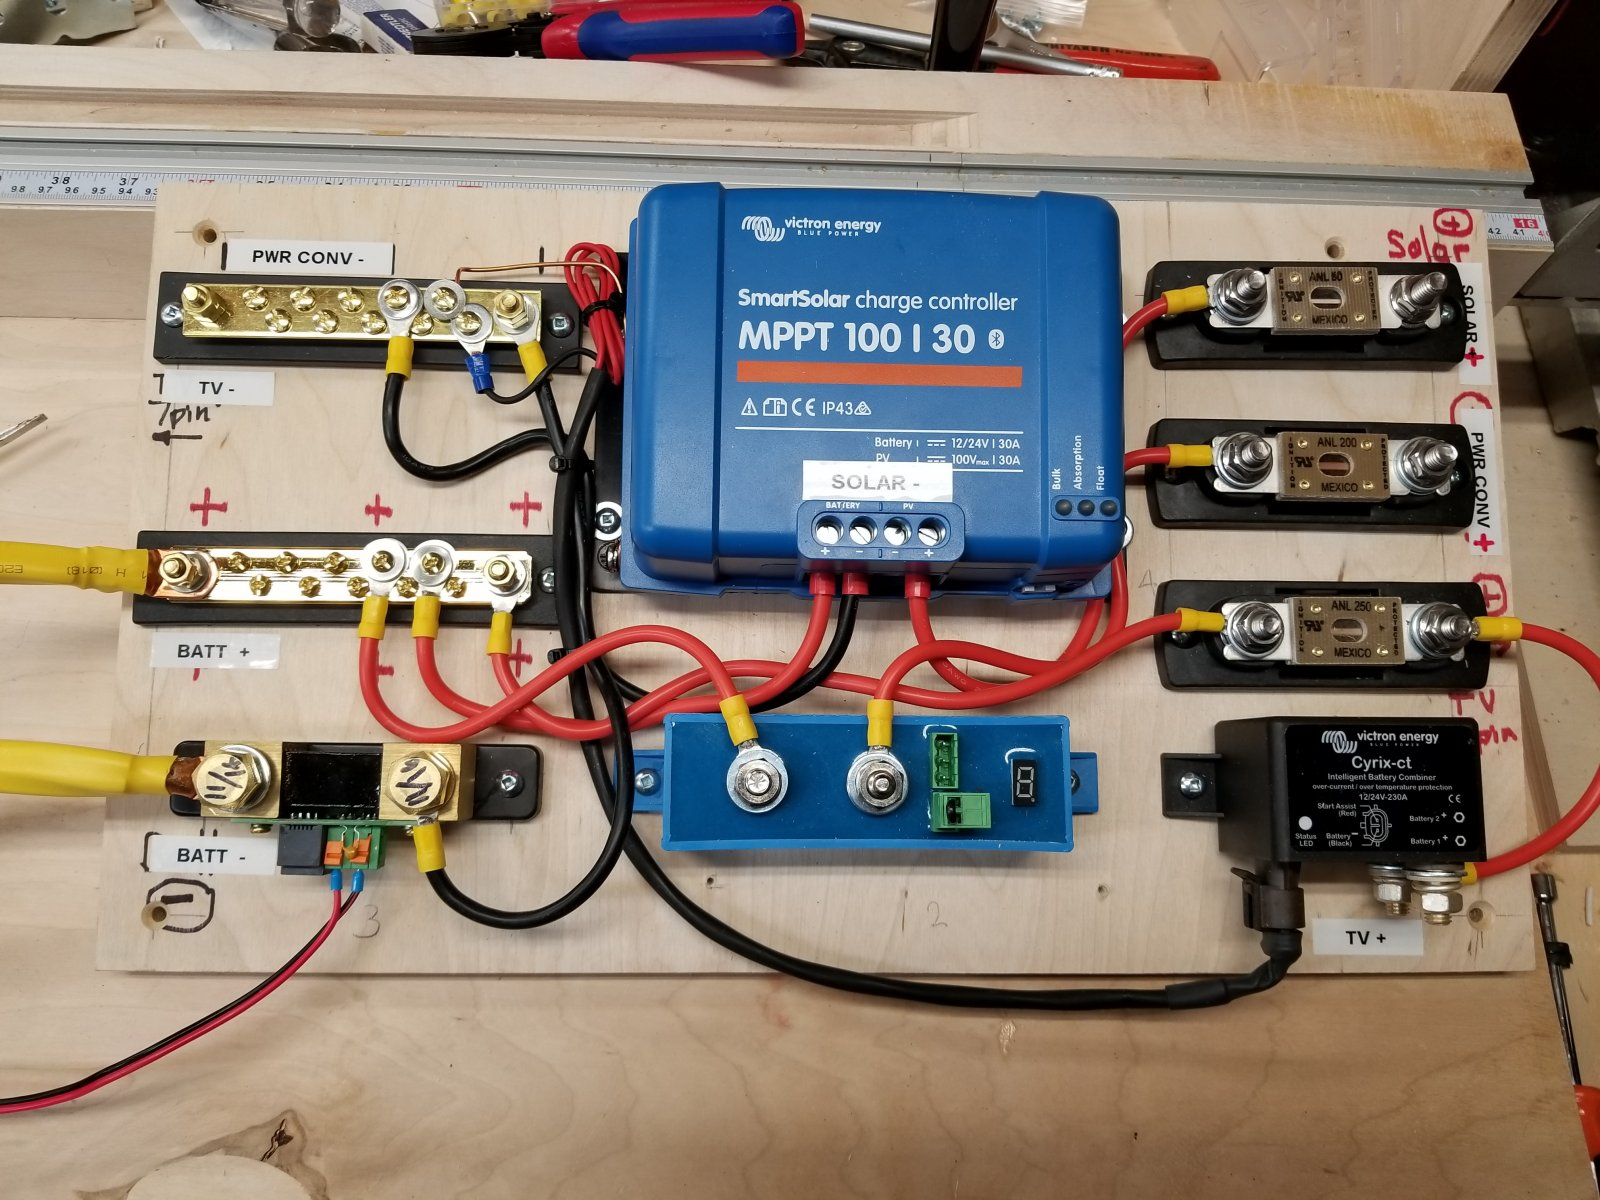 Click image for larger version  Name:solar-lion power layout ready for install v4.jpg Views:198 Size:325.6 KB ID:311846